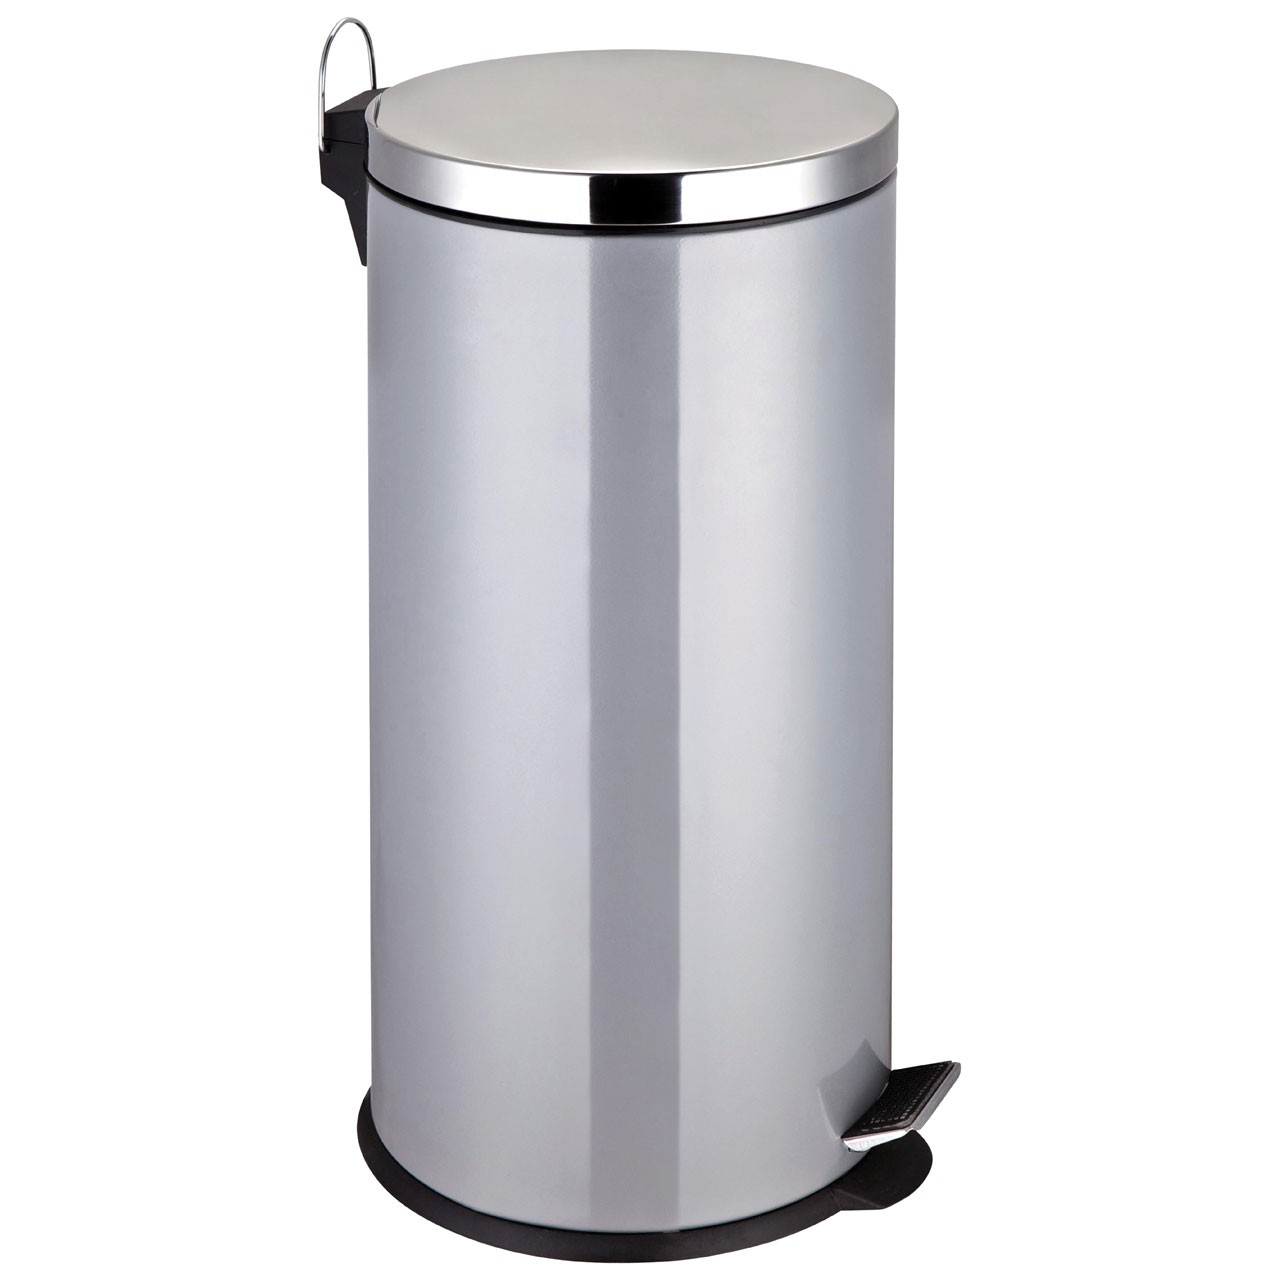 Prime Furnishing 30 Ltr Stainless Steel Pedal Bin - Silver